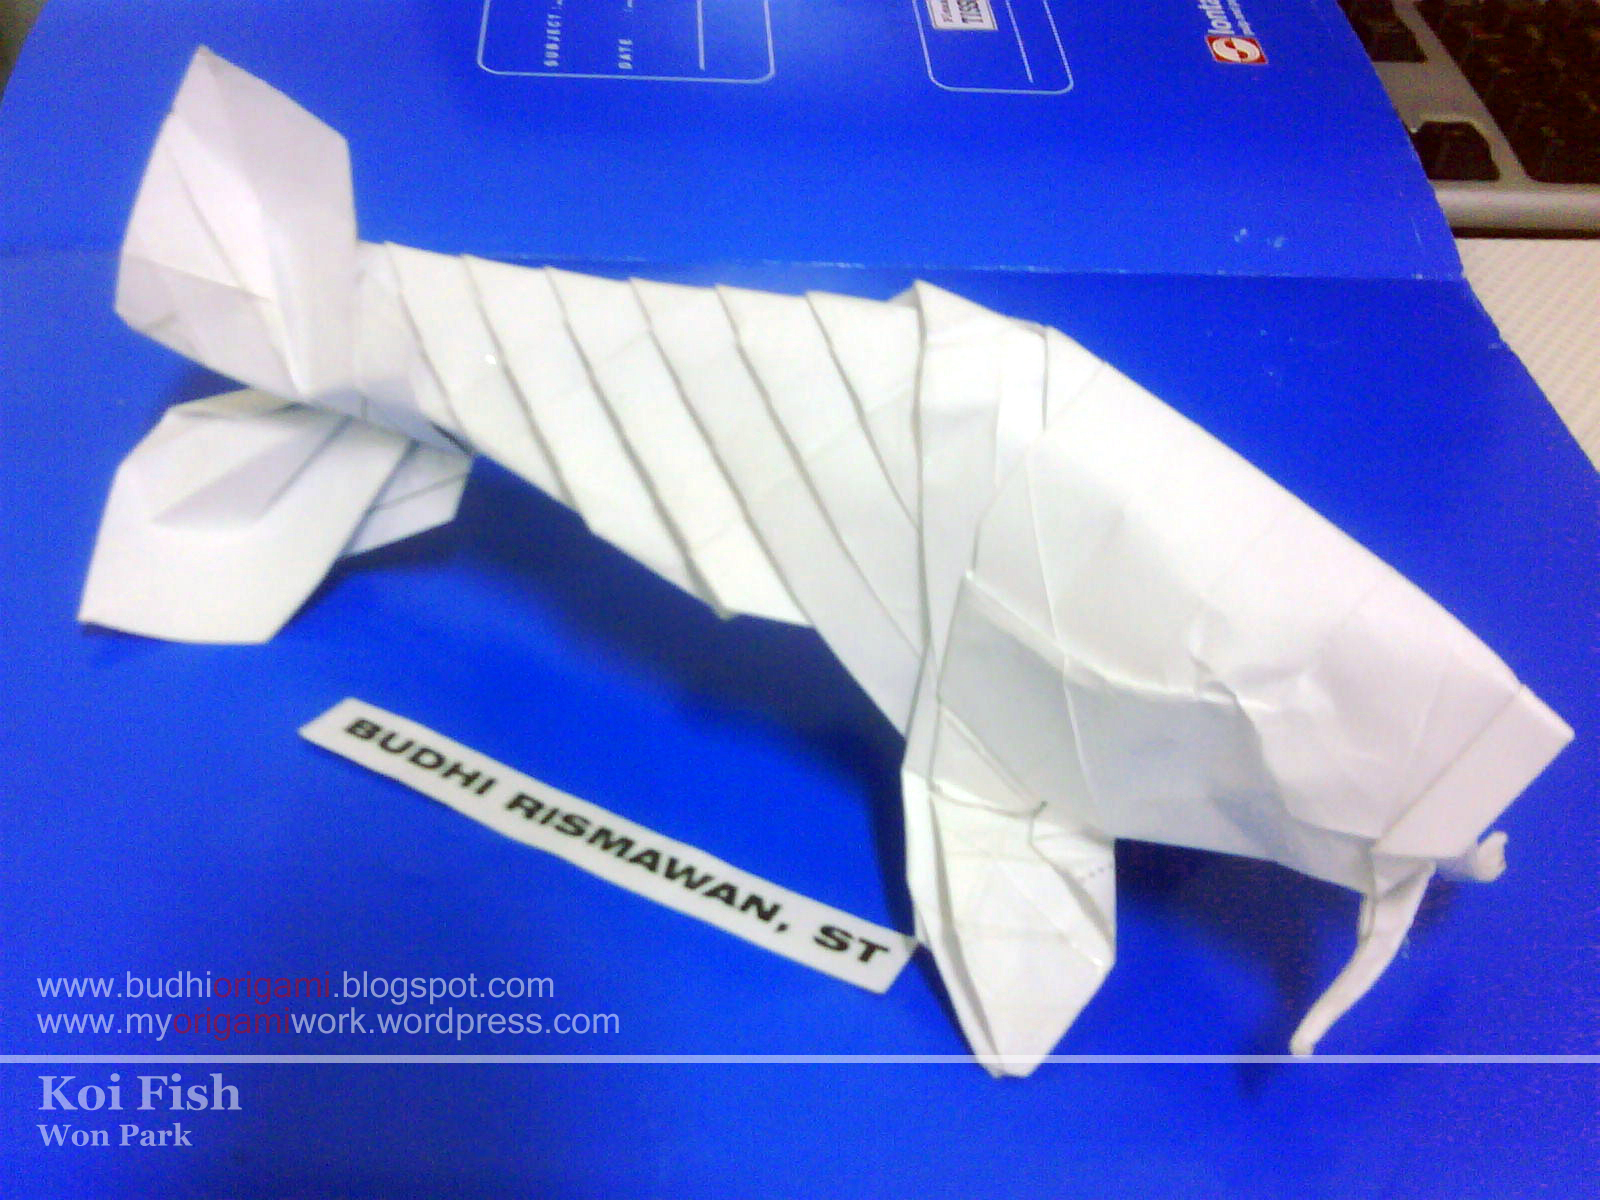 medium origami | myorigamiwork - photo#23